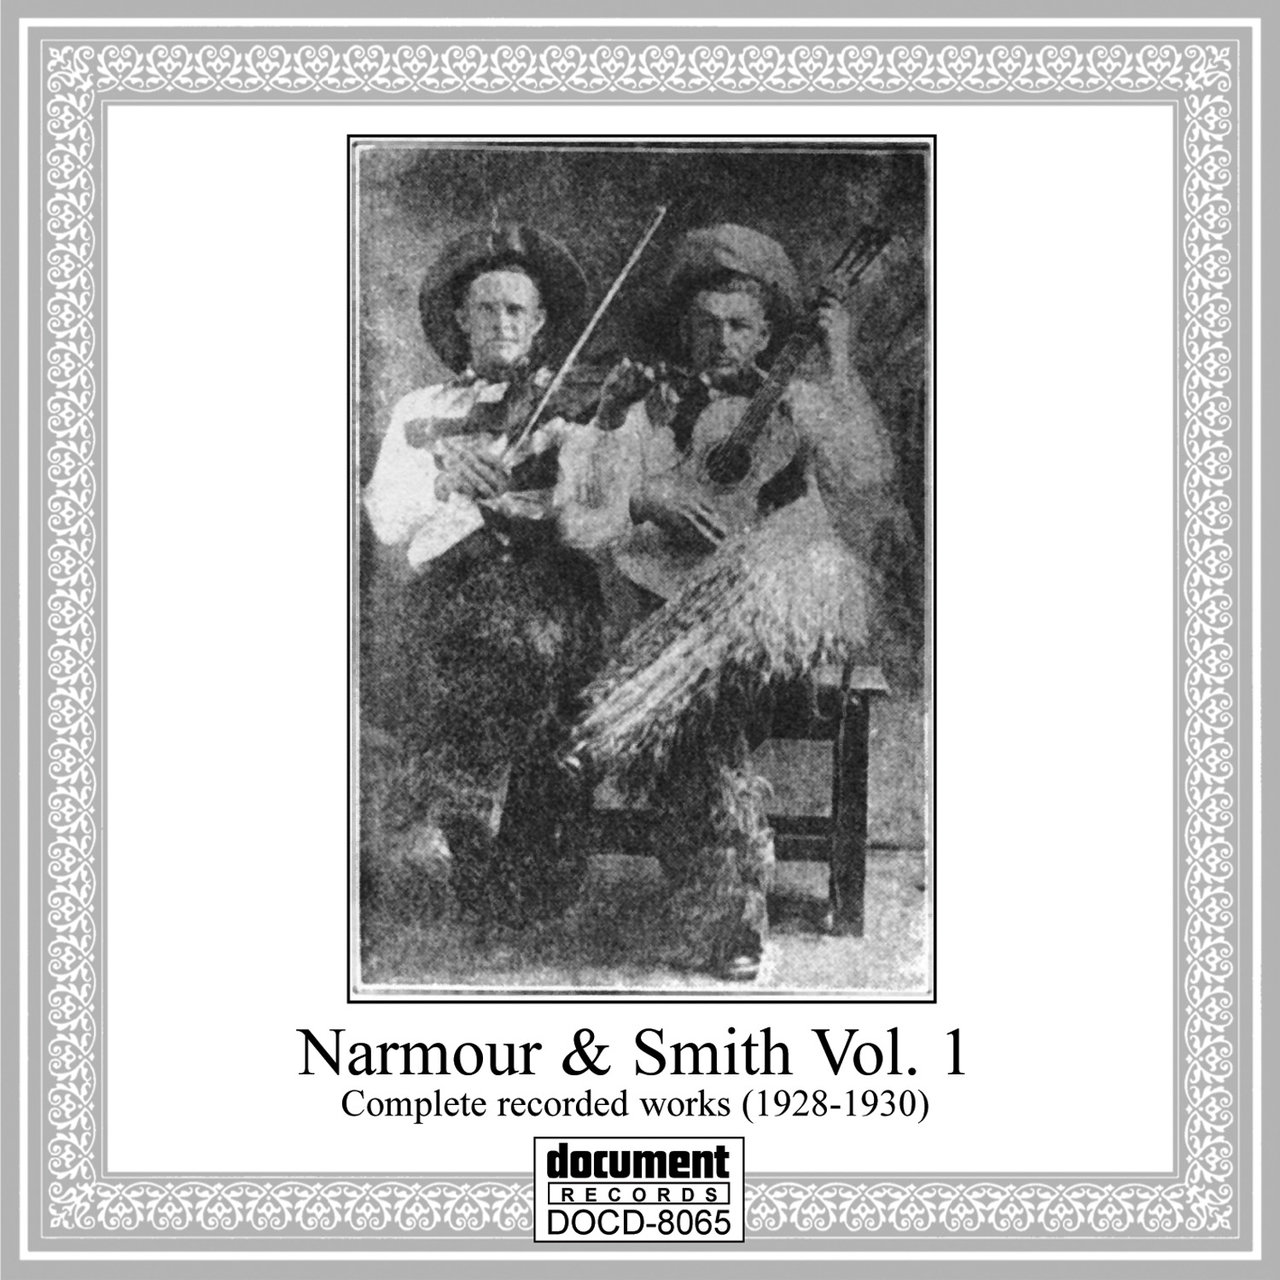 Narmour & Smith Complete Recorded Works (1928-1930), Vol. 1